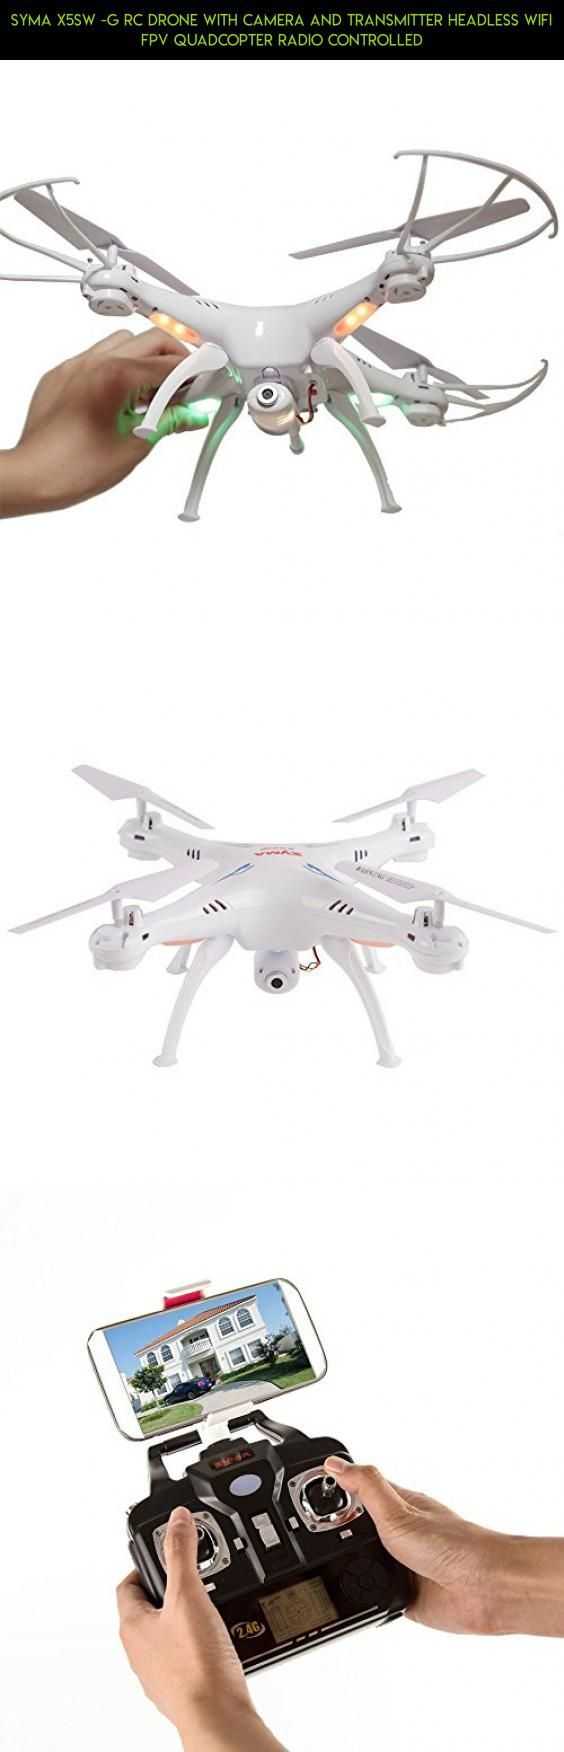 SYMA X5SW -G RC Drone with Camera and Transmitter Headless Wifi FPV Quadcopter Radio Controlled #drone #parts #tech #products #fpv #camera #shopping #cheerson #plans #kids #racing #drones #technology #gadgets #kit #for